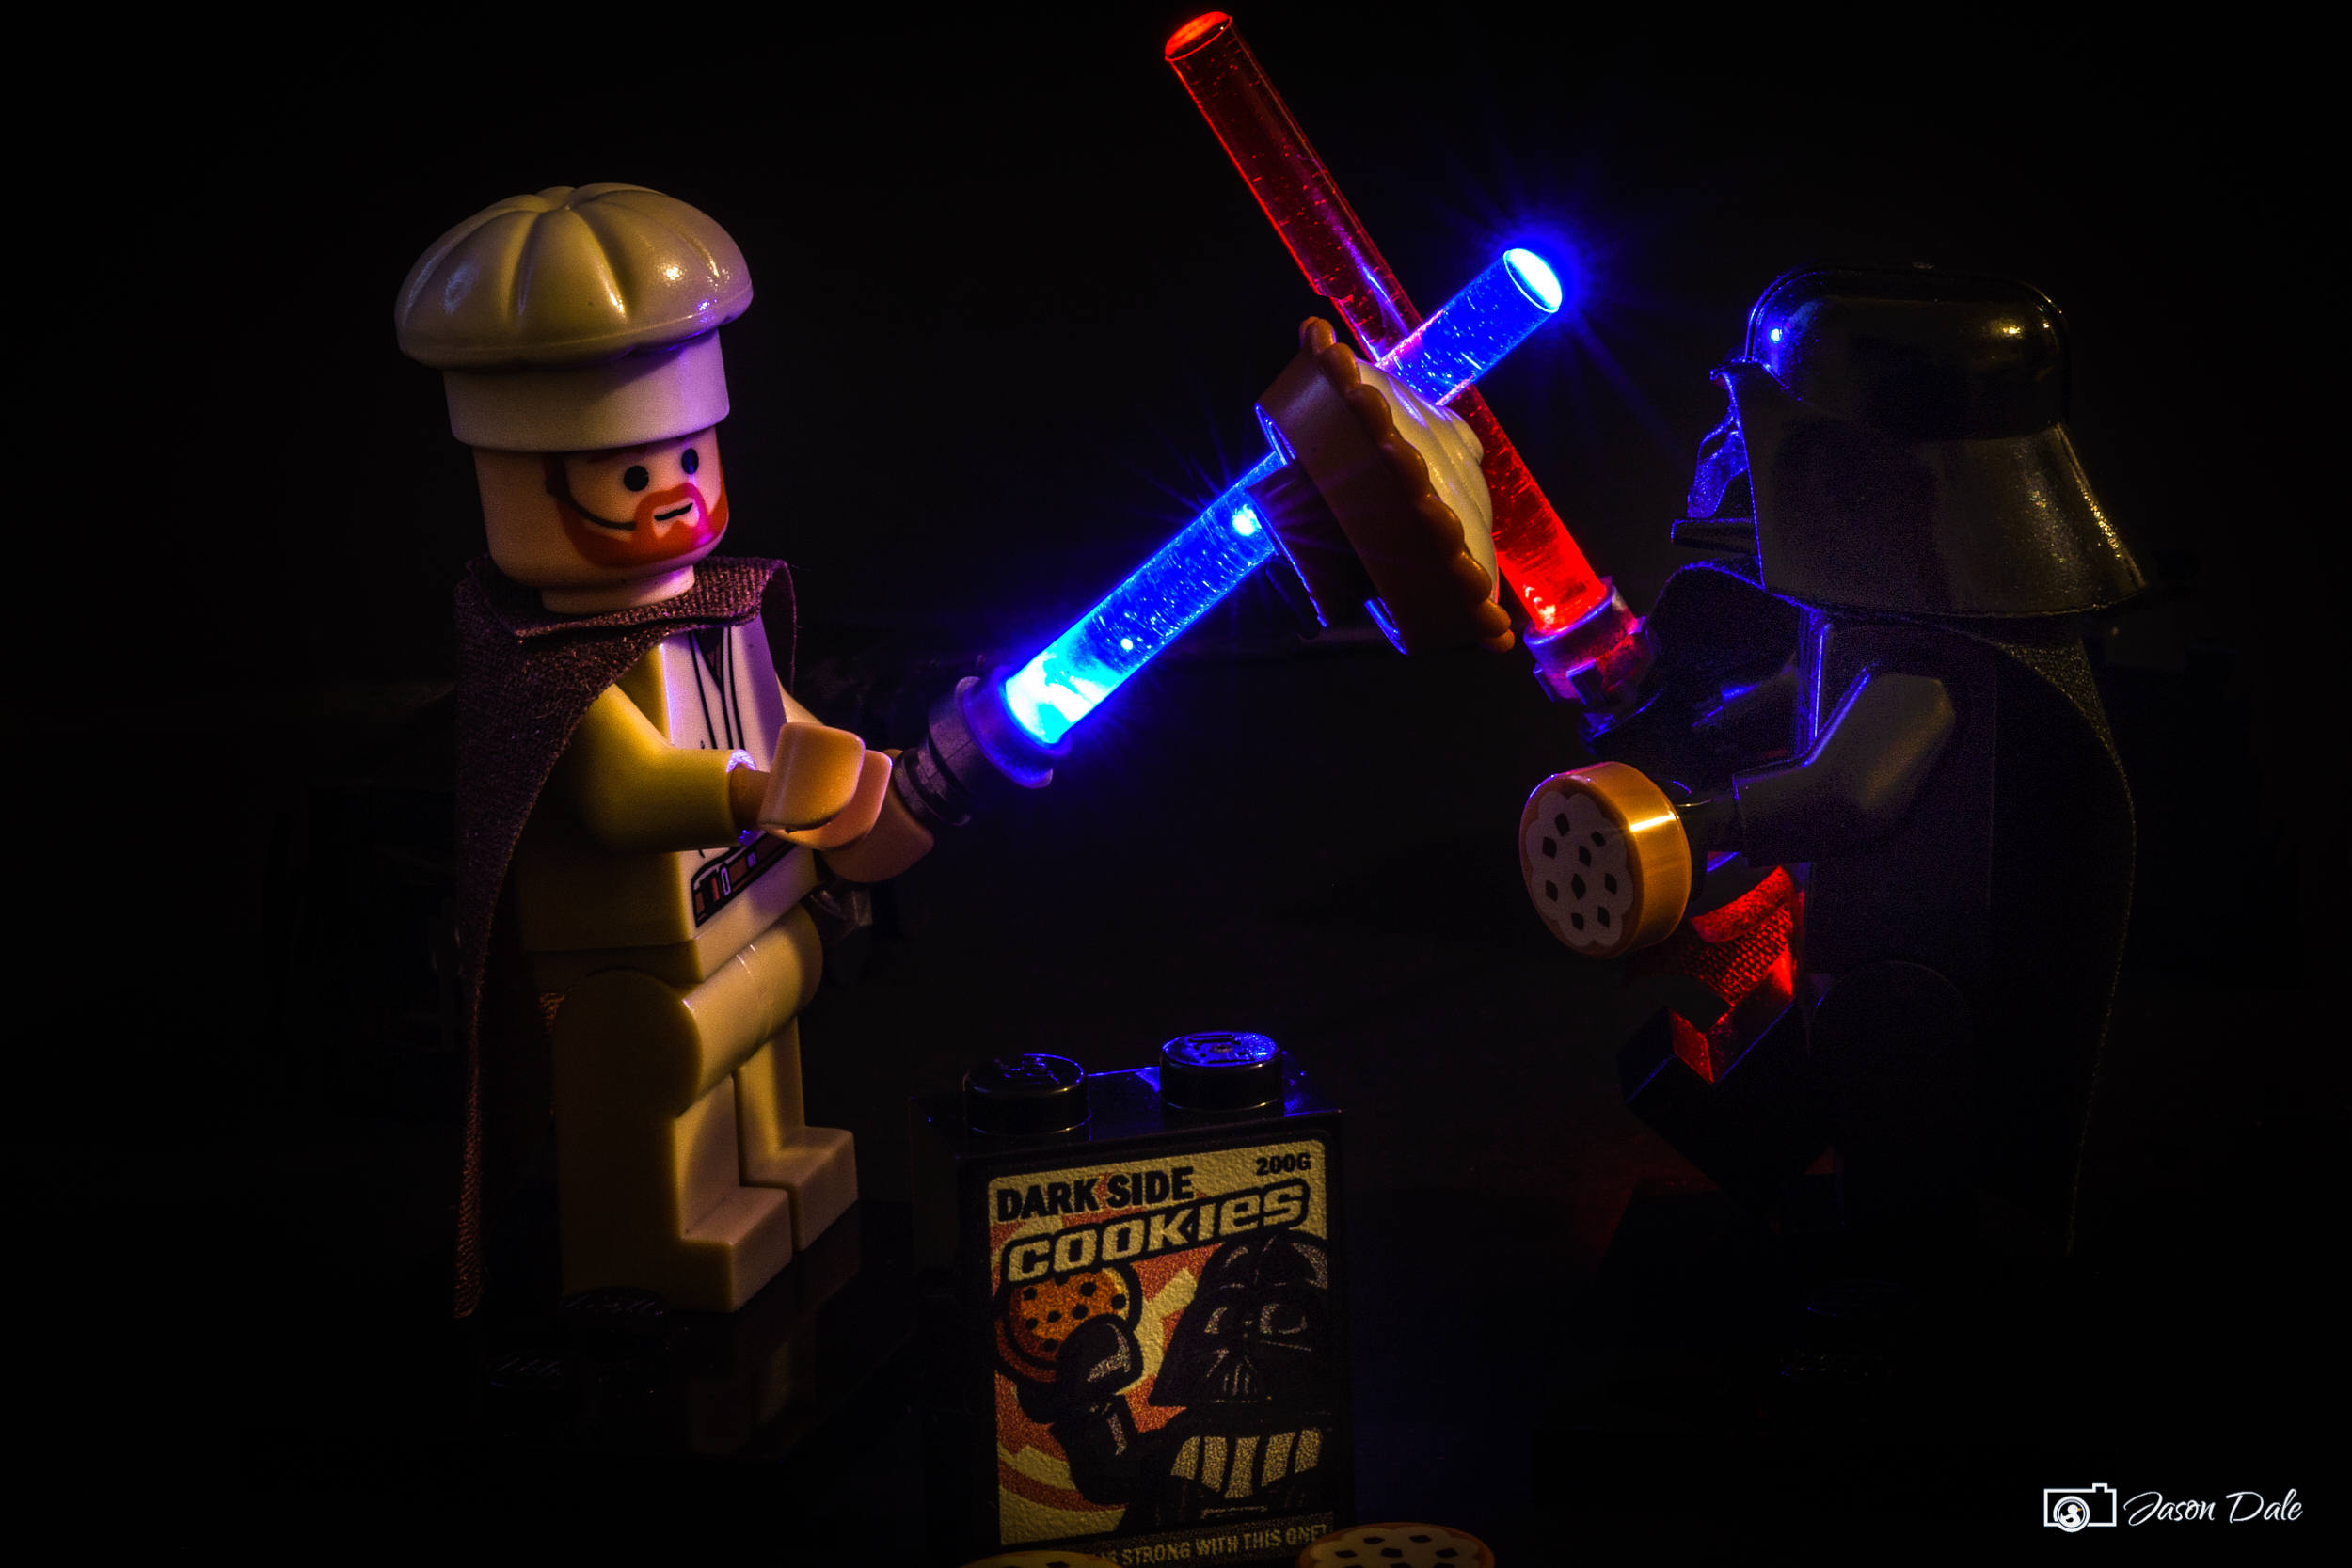 Why Do You Photograph Lego?